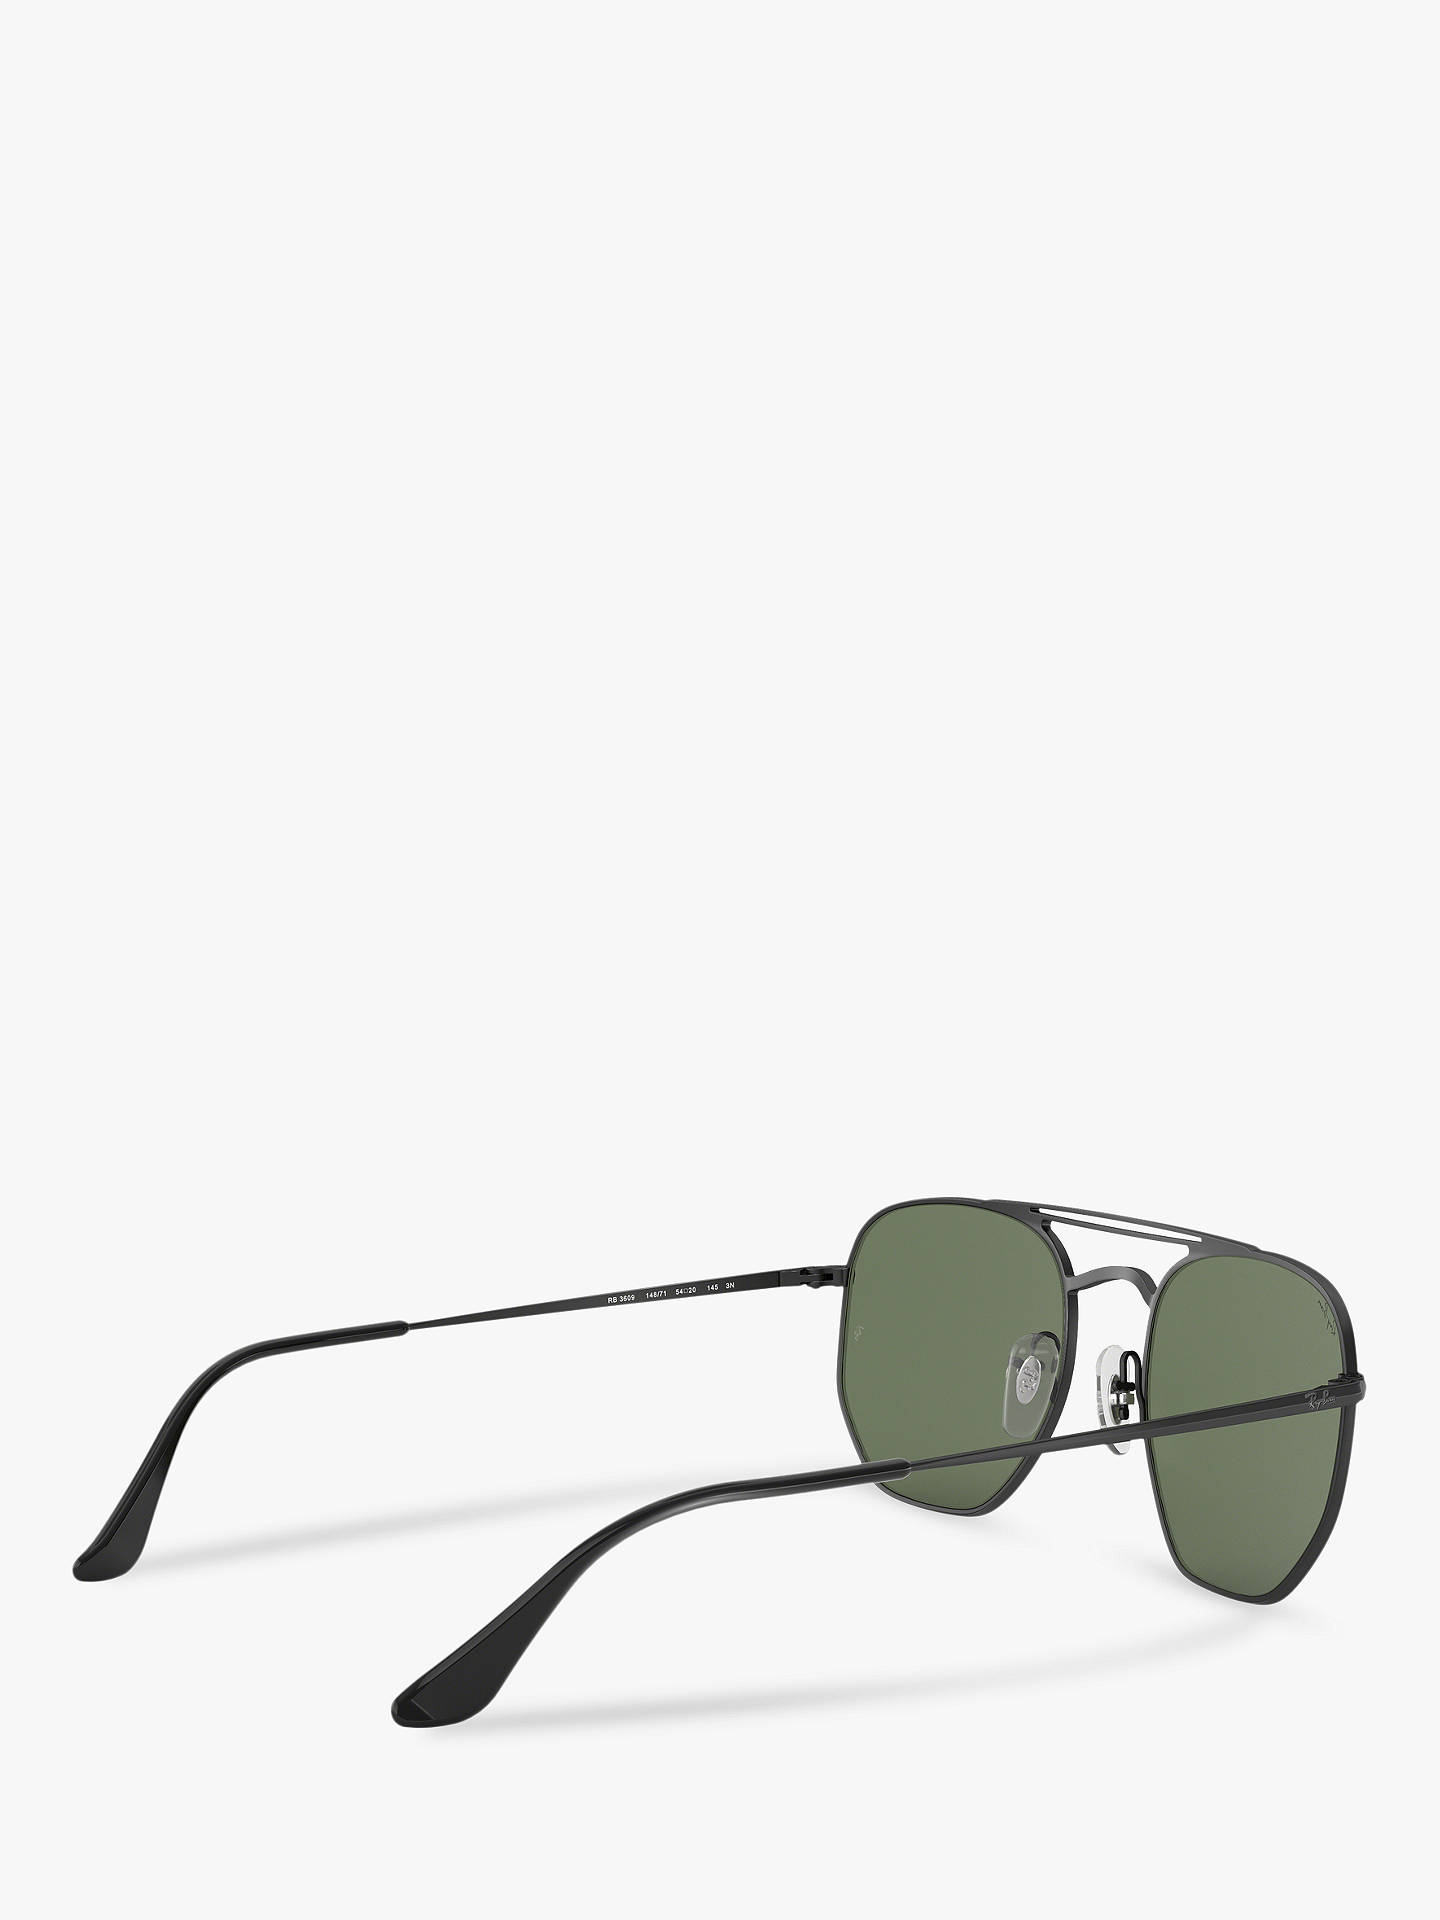 BuyRay-Ban RB3609 Unisex Square Sunglasses, Gloss Black/Green Online at johnlewis.com